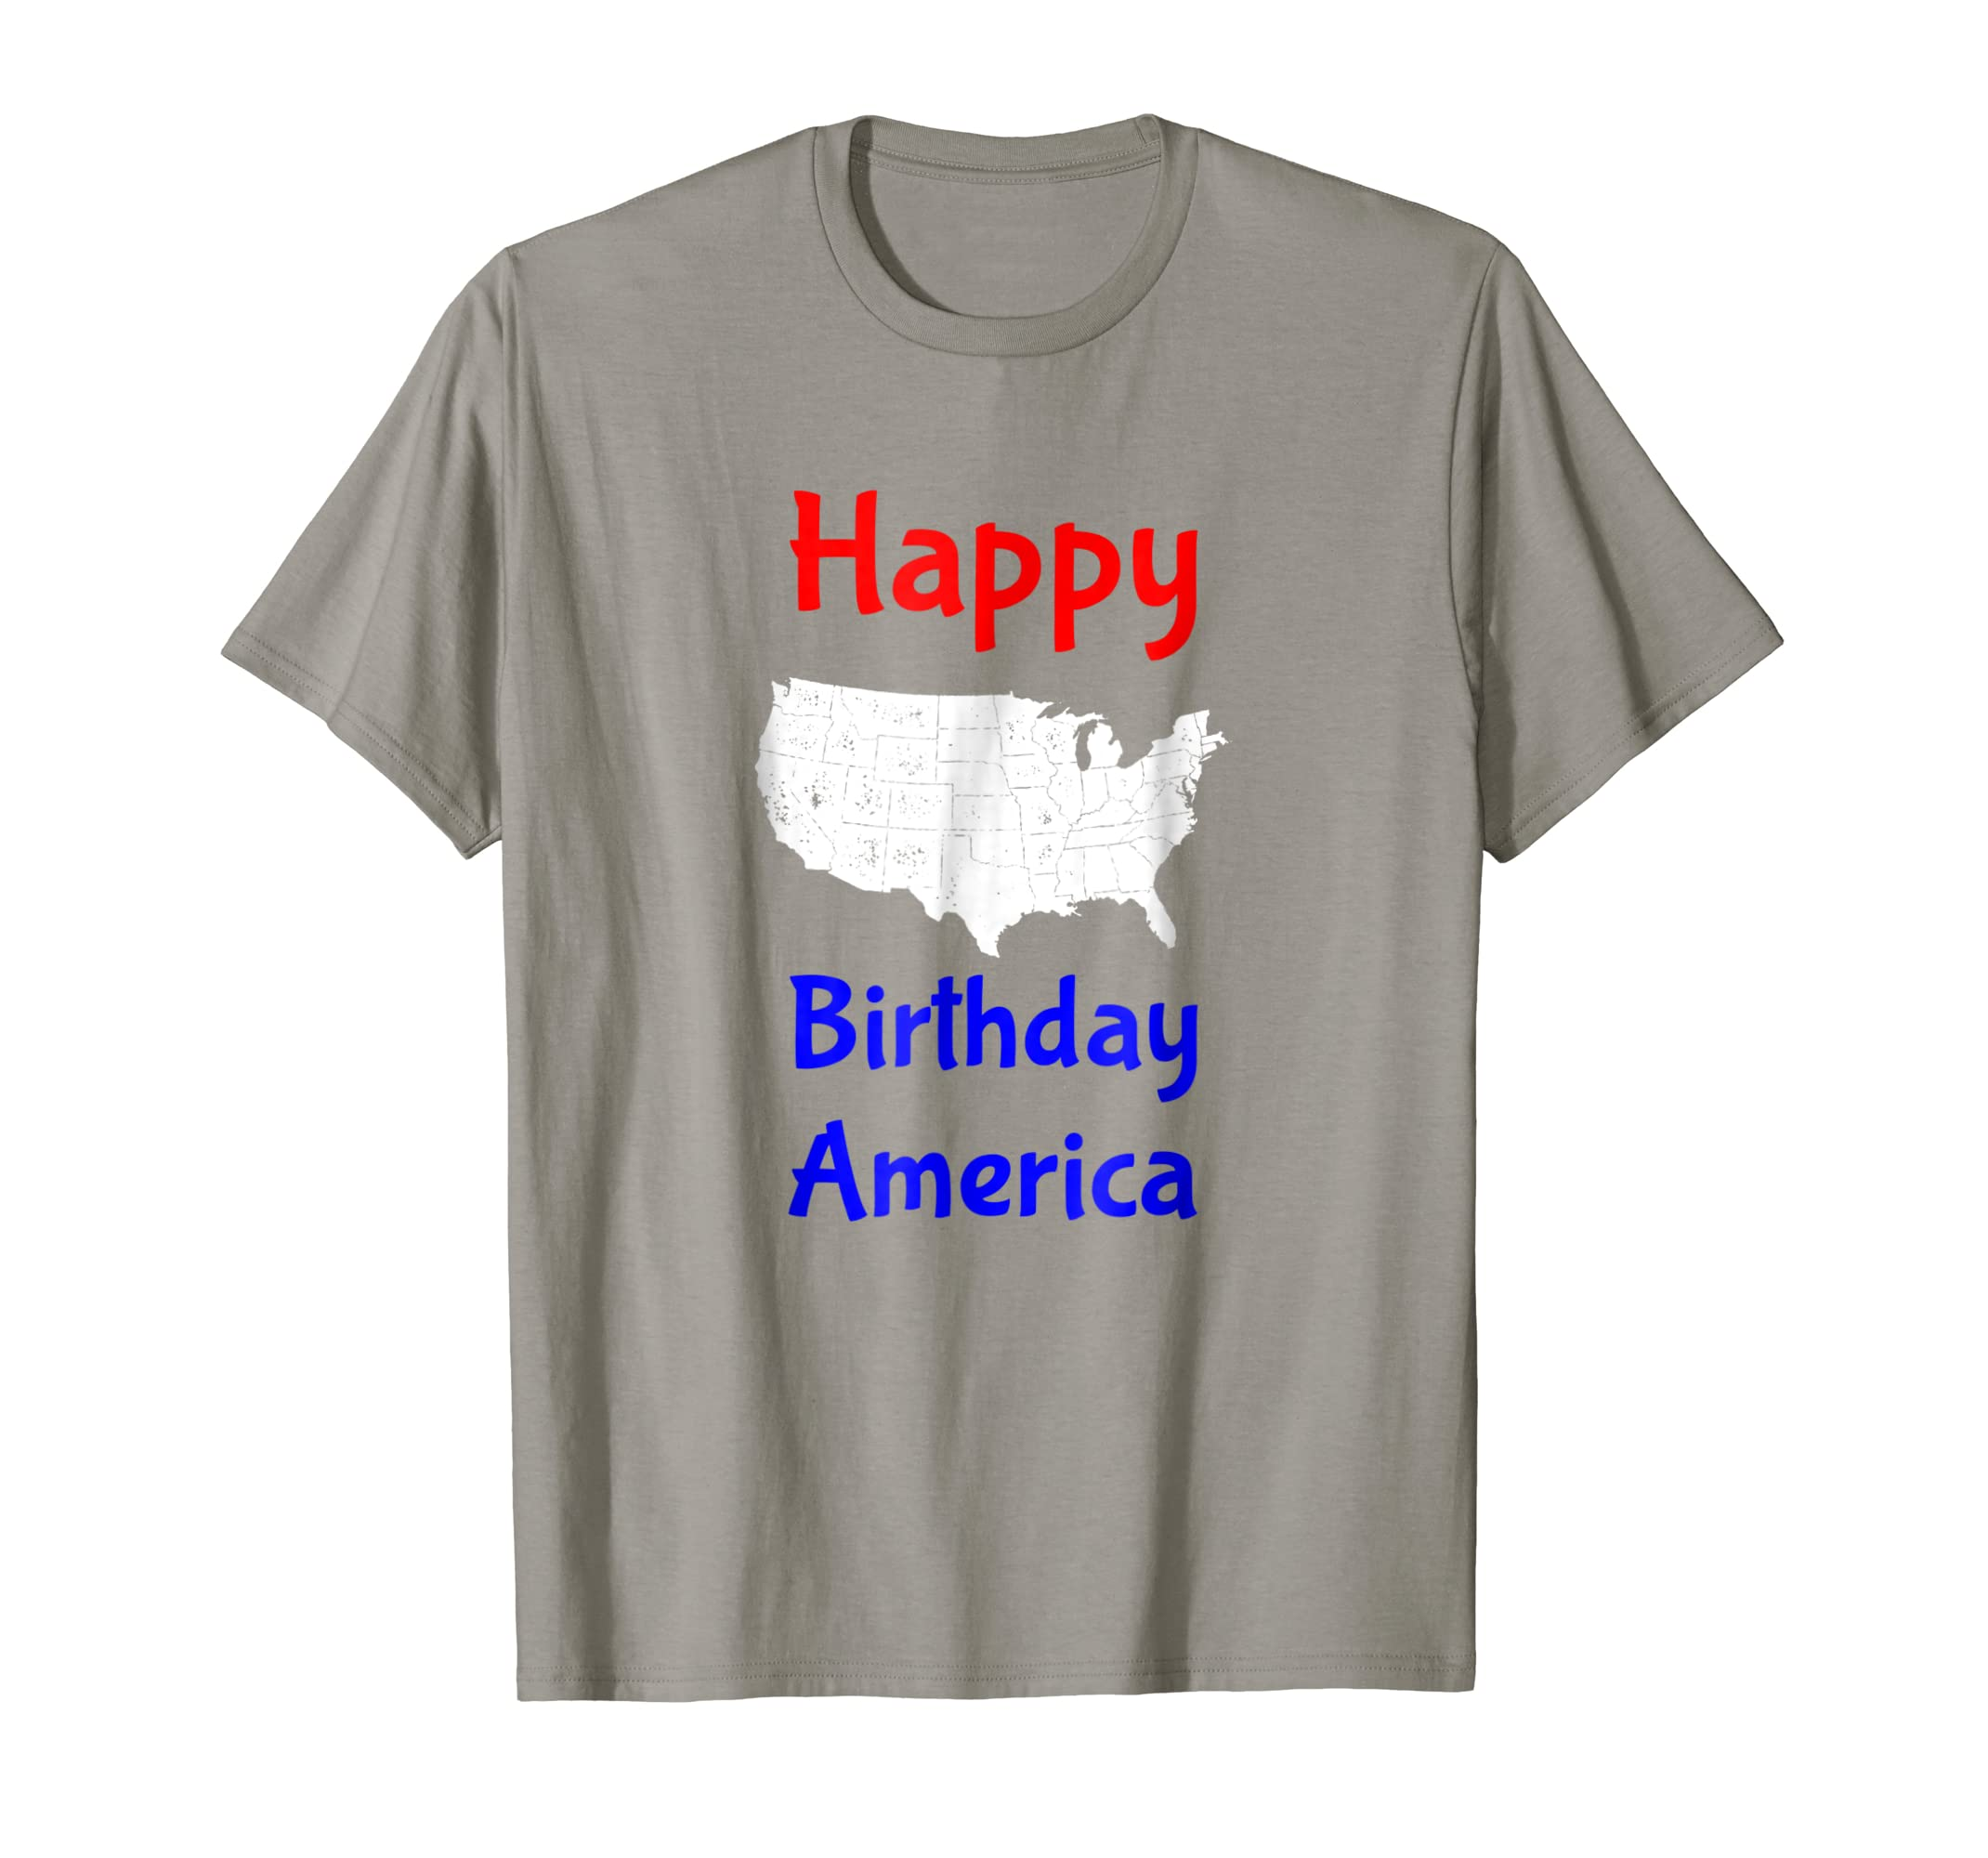 Amazon July 4th Happy Birthday America T Shirt For Independence Day Clothing